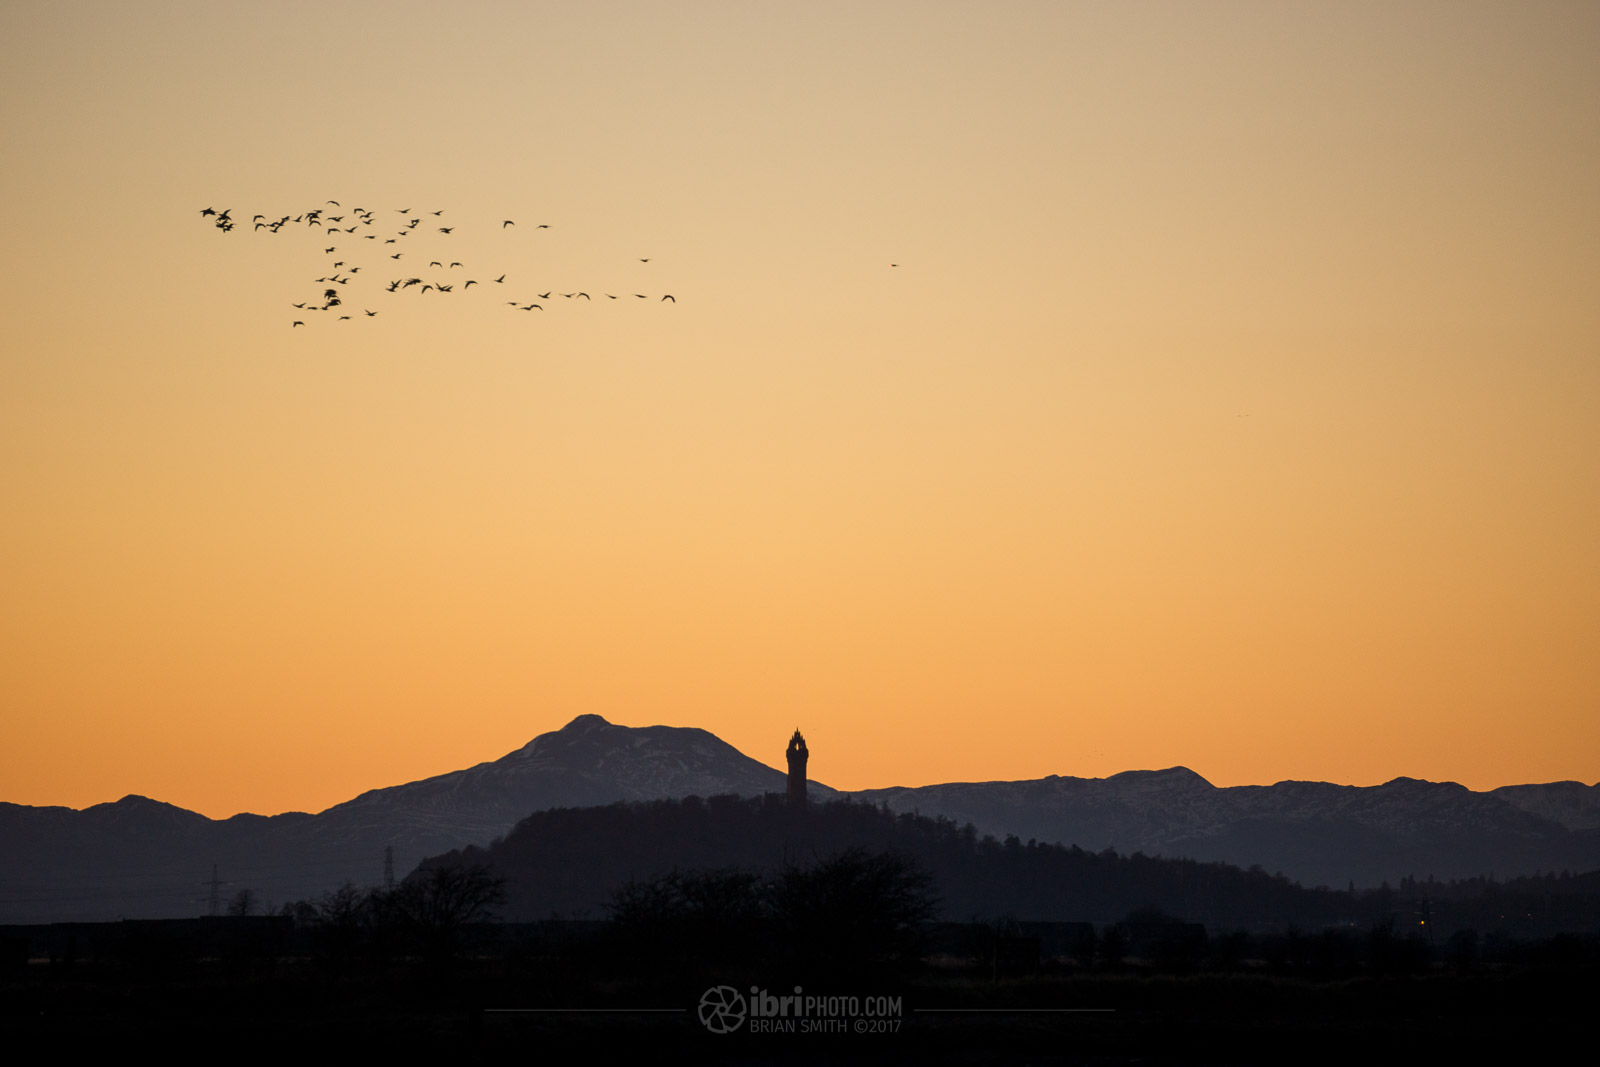 Ben Ledi and The National Wallace Monument from South Alloa, Stirlingshire.Sony Nex 7 - Sony E 55-210mm f4.5-6.3 OSS - 174mm - 1/160 - f6.3 - ISO400